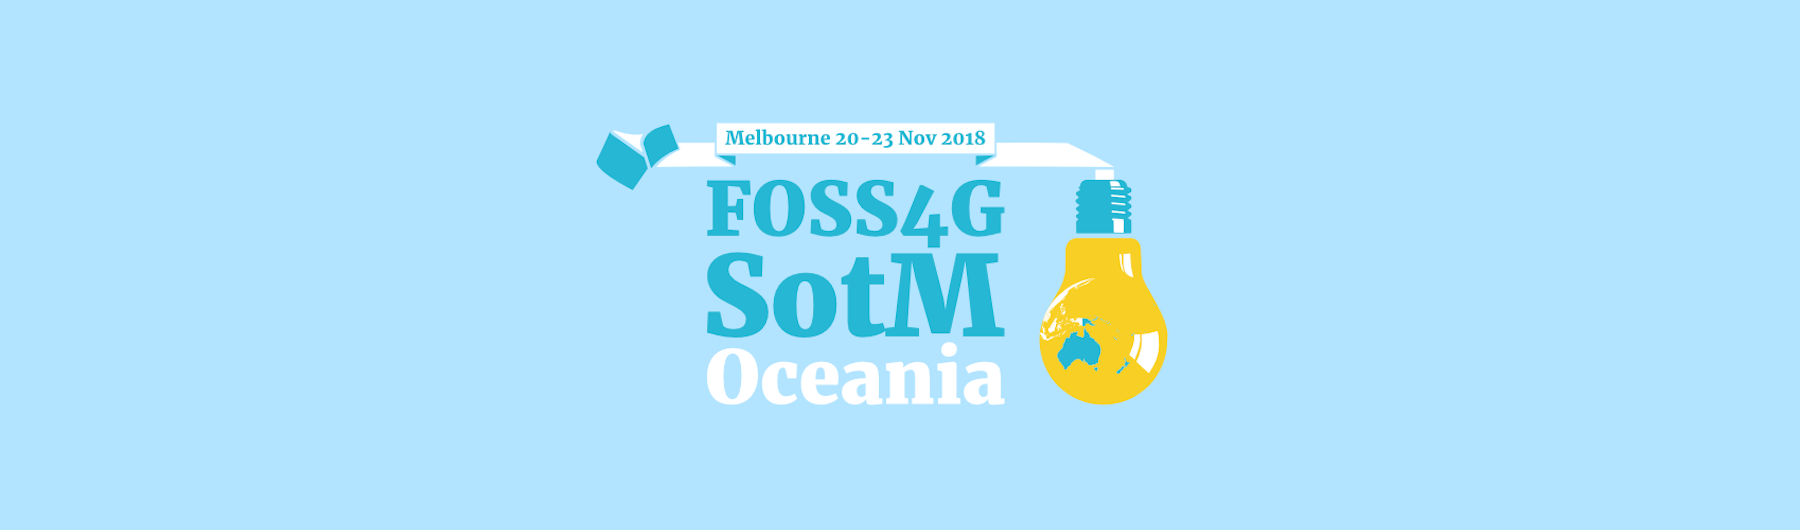 FOSS4G SotM Oceania 2018 - Community Day